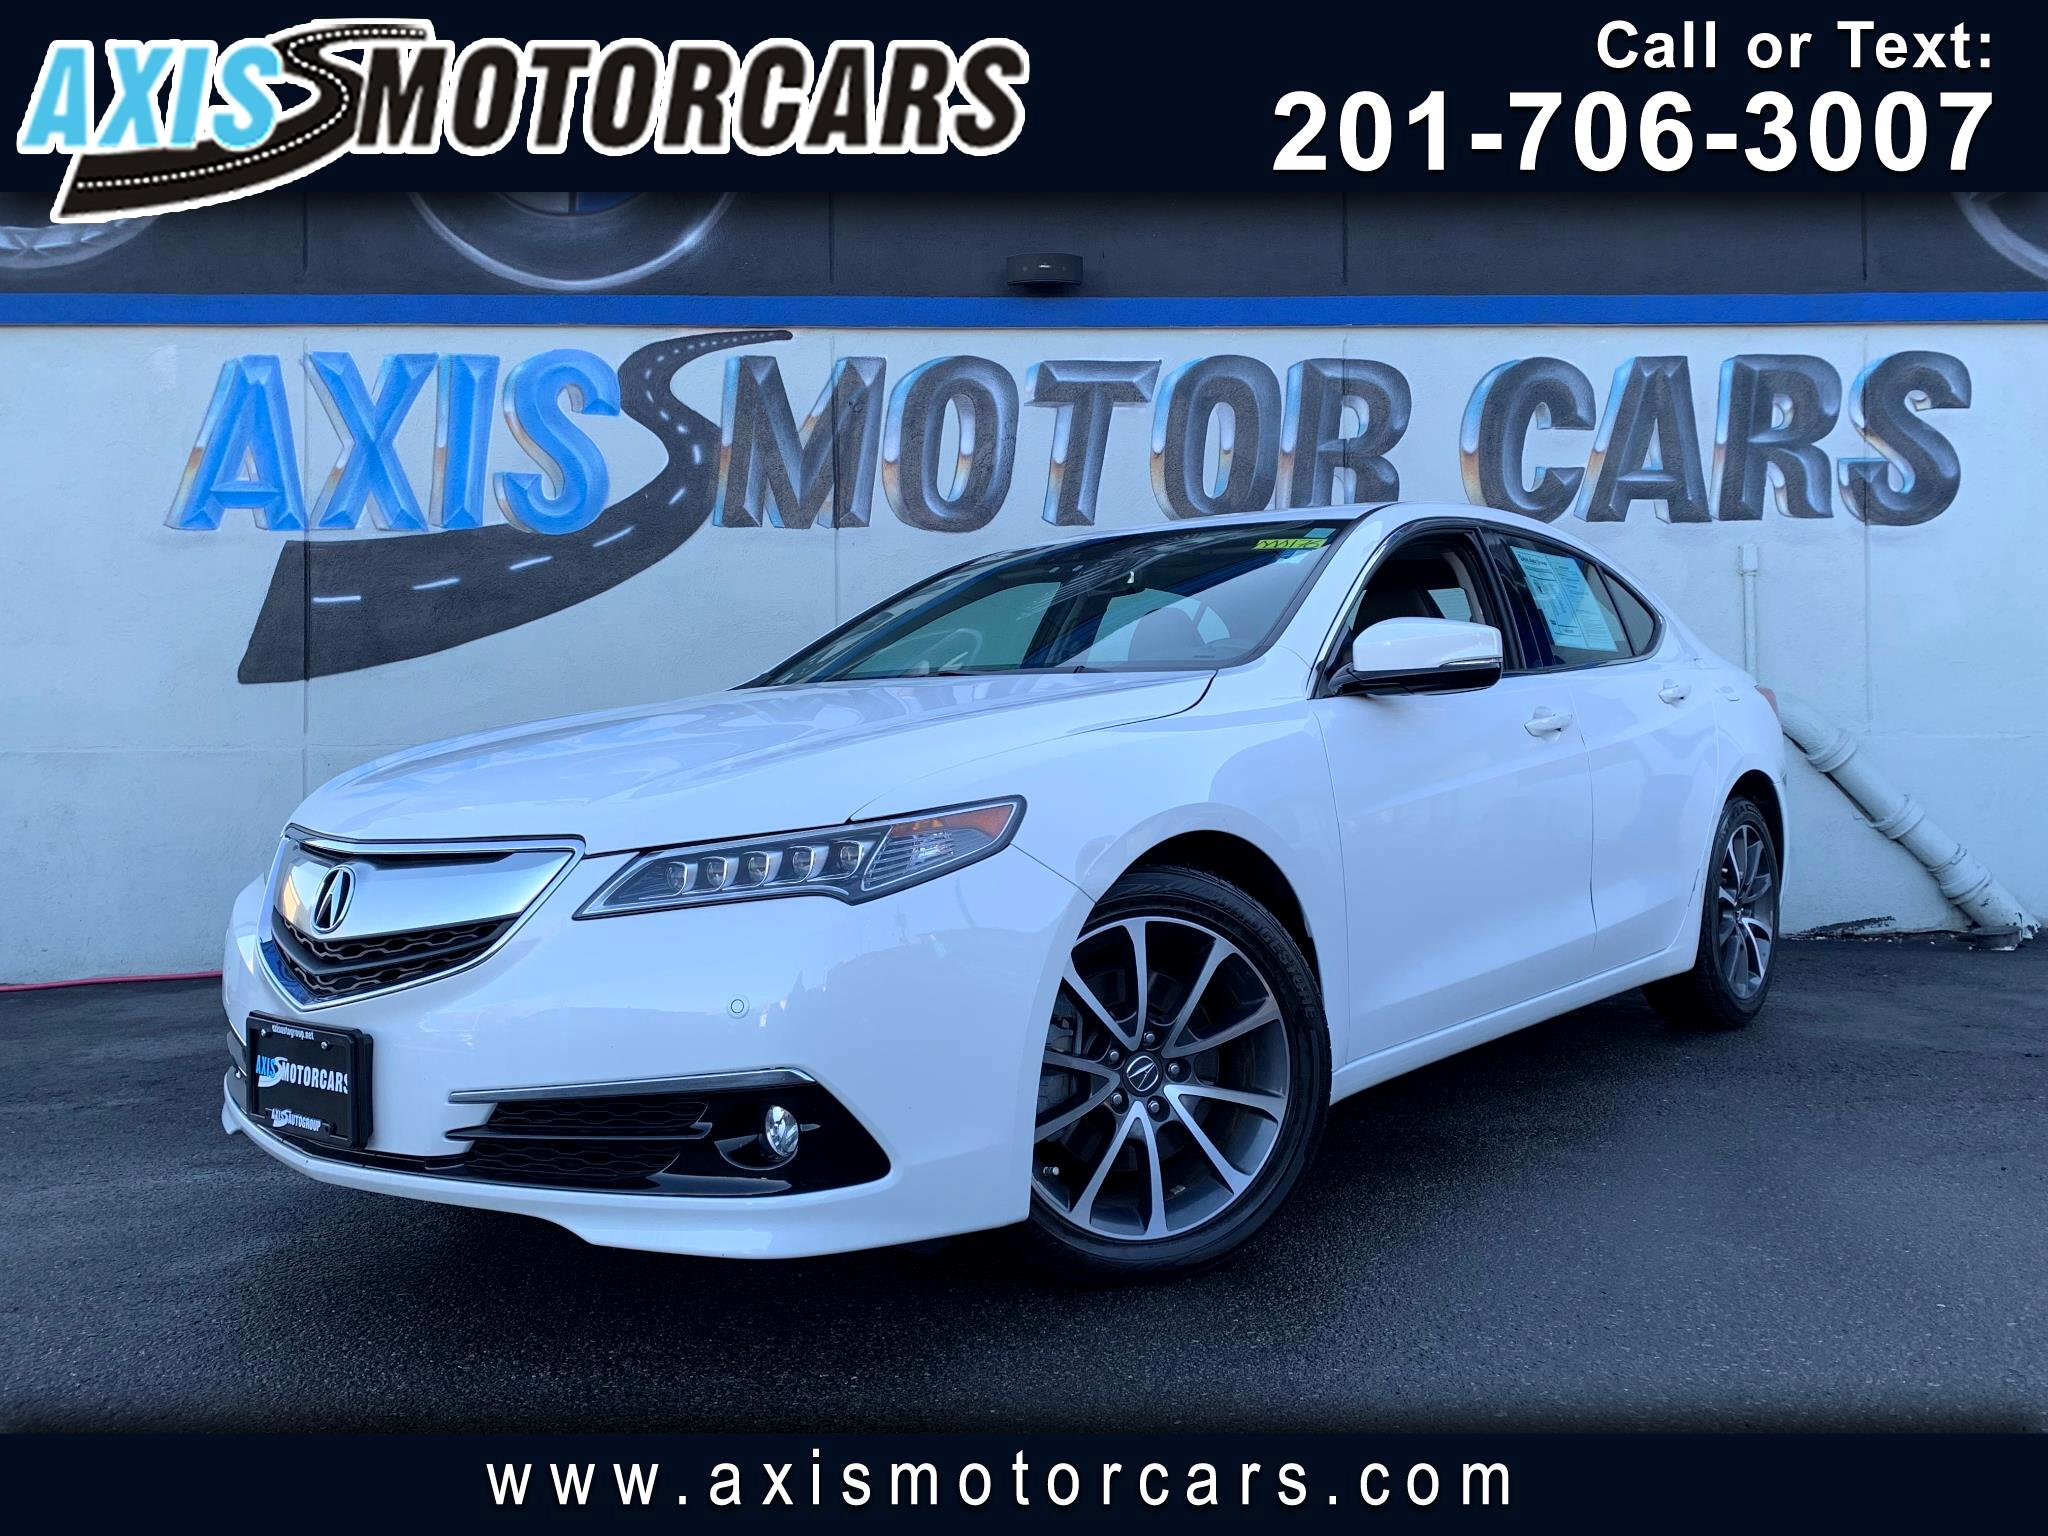 2015 Acura TLX w/Navigation Bakup Camera Sun Roof